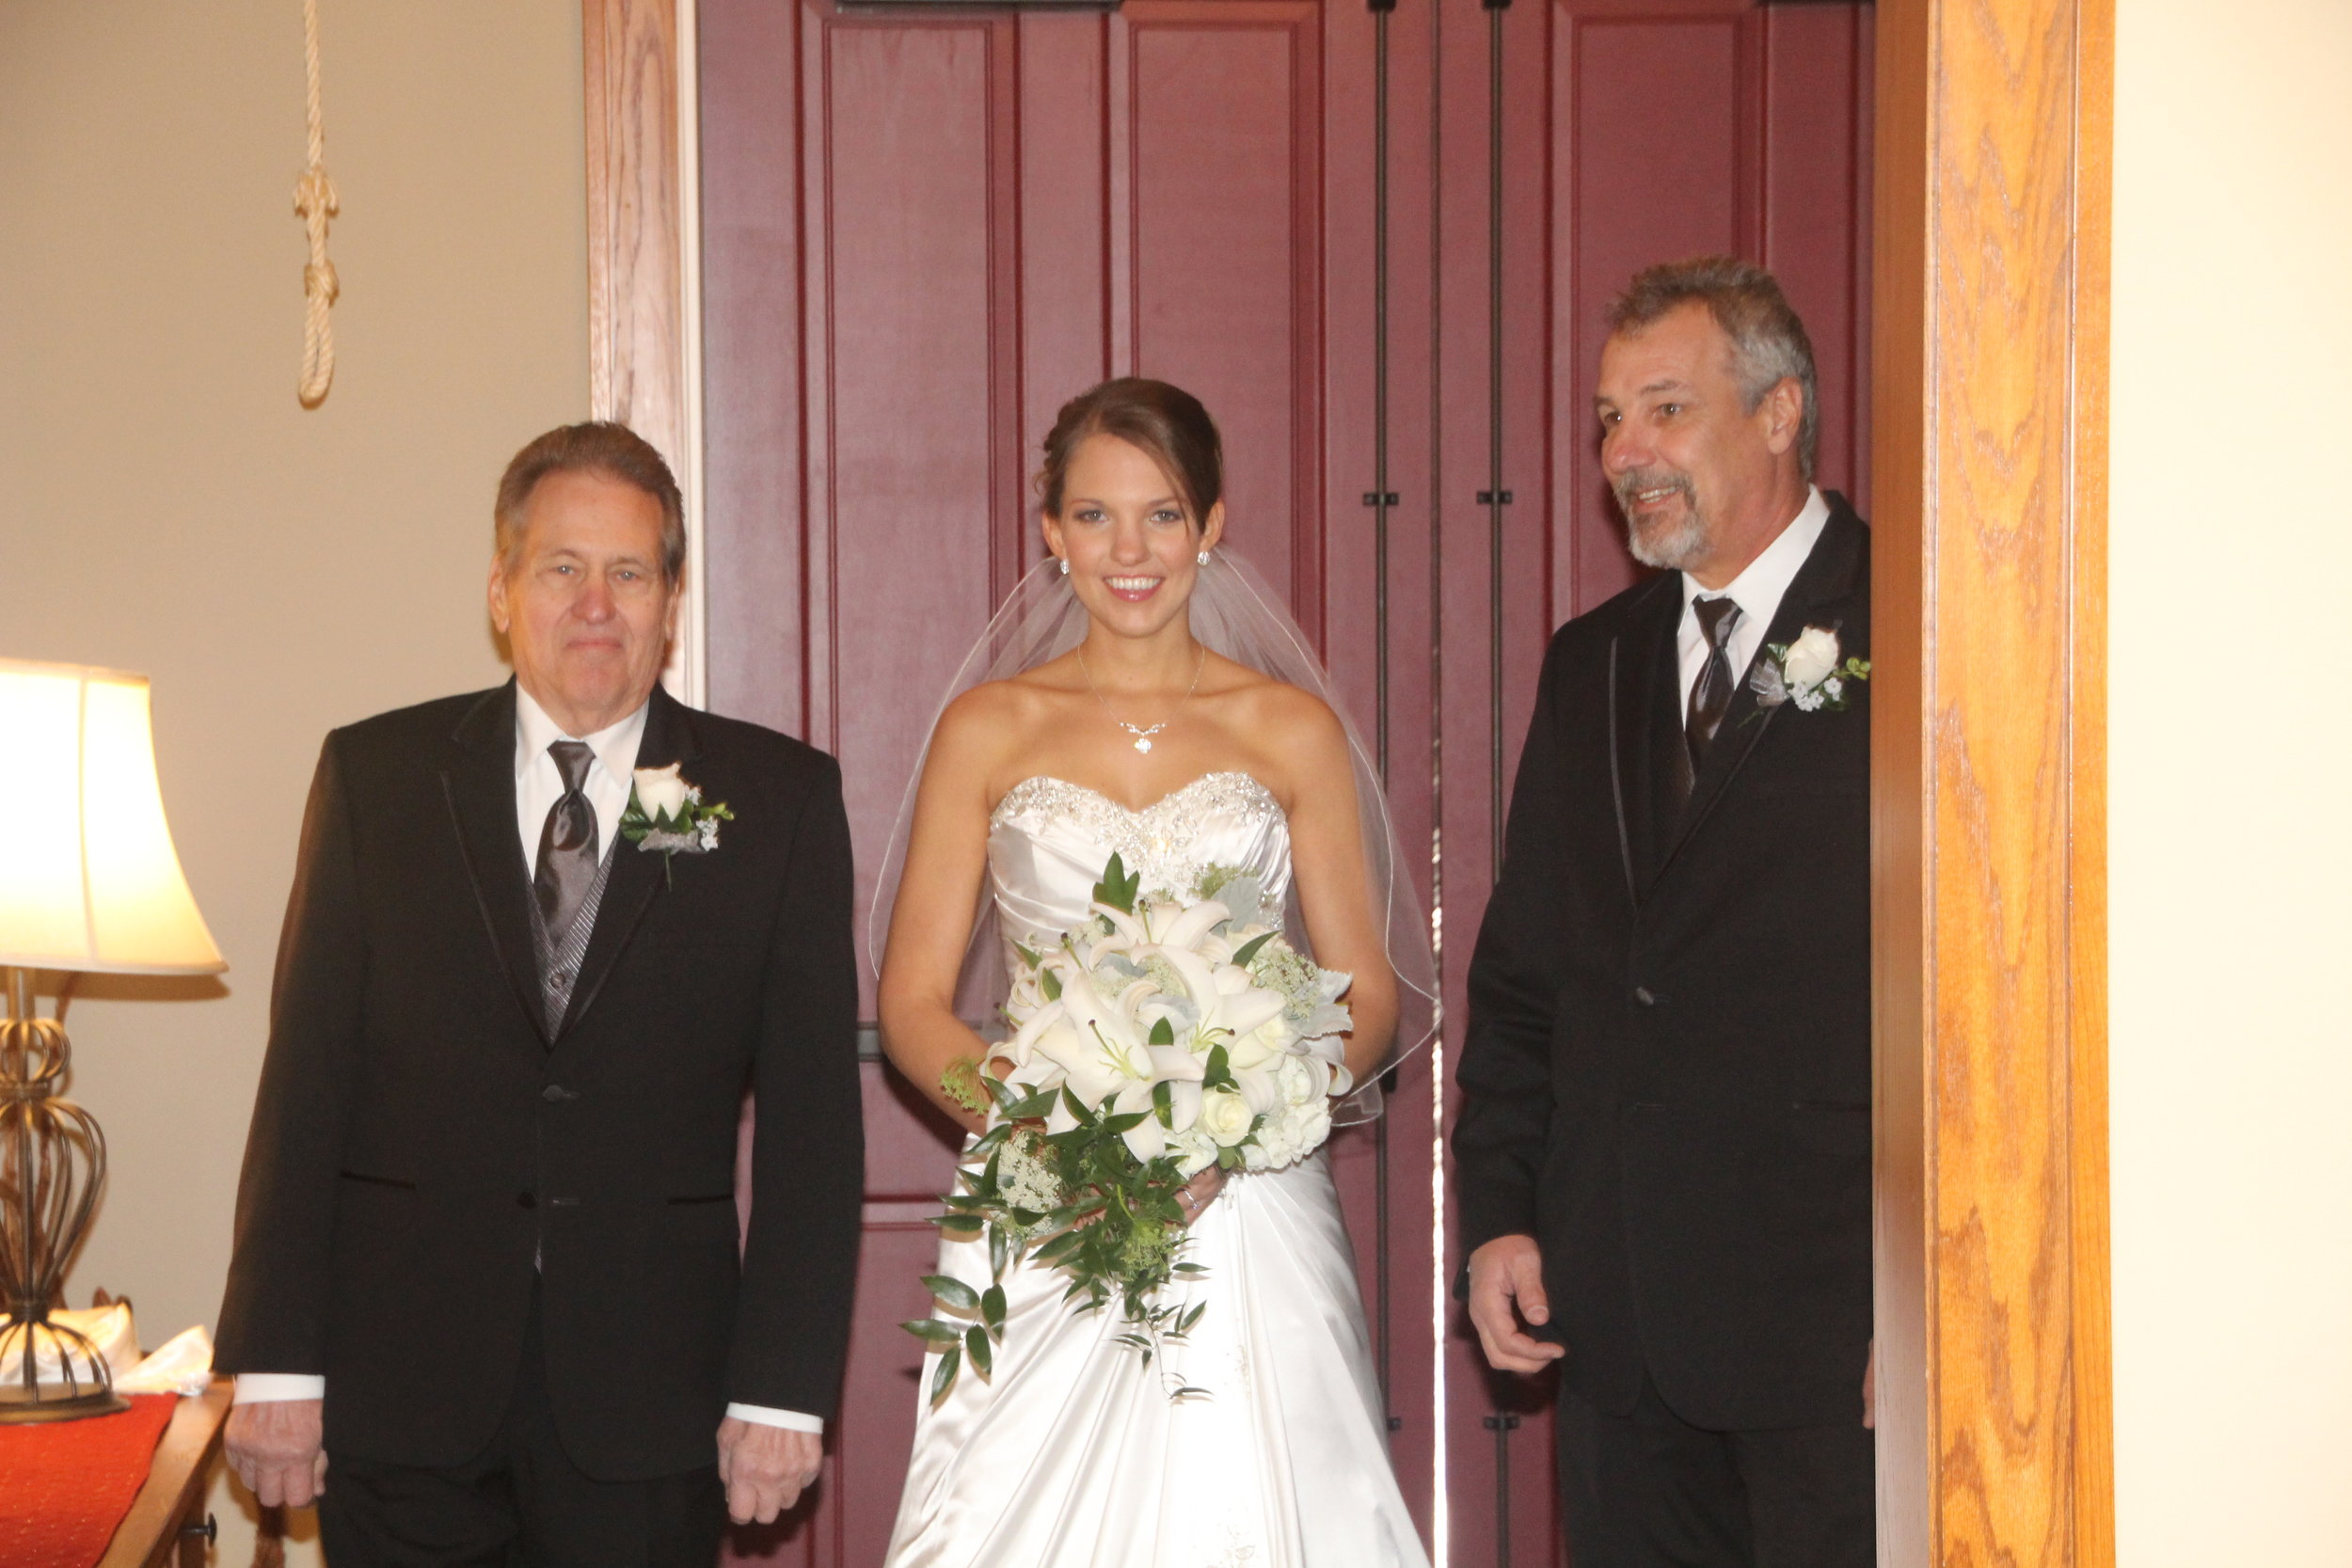 Brittany was escorted down the aisle by both her father and grandfather. I thought that was SO sweet!